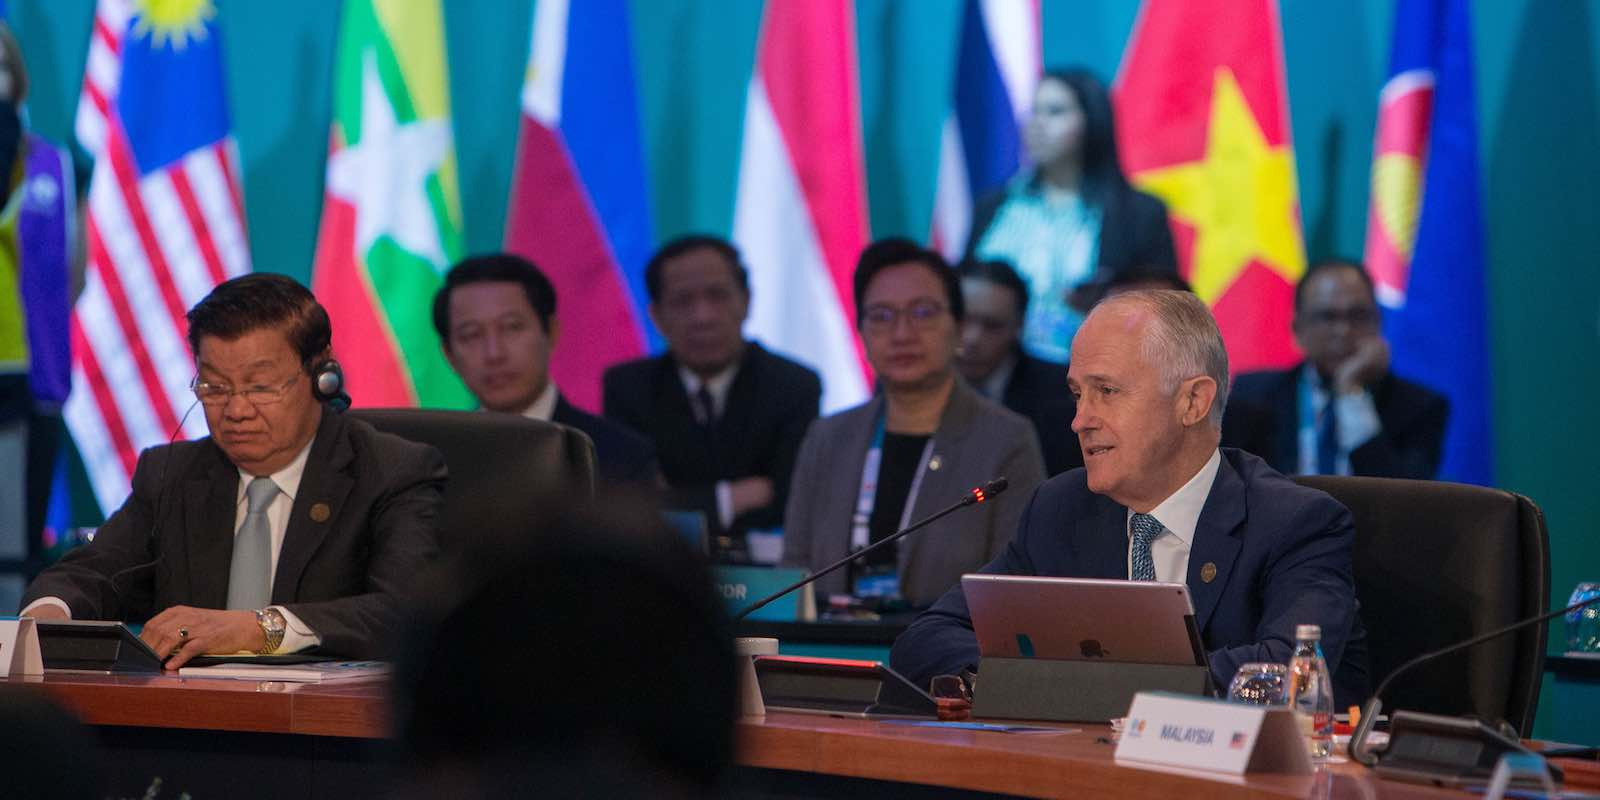 ASEAN-Australia Leaders Plenary in March (Photo: ASEAN-Australia Special Summit 2018/Flickr)